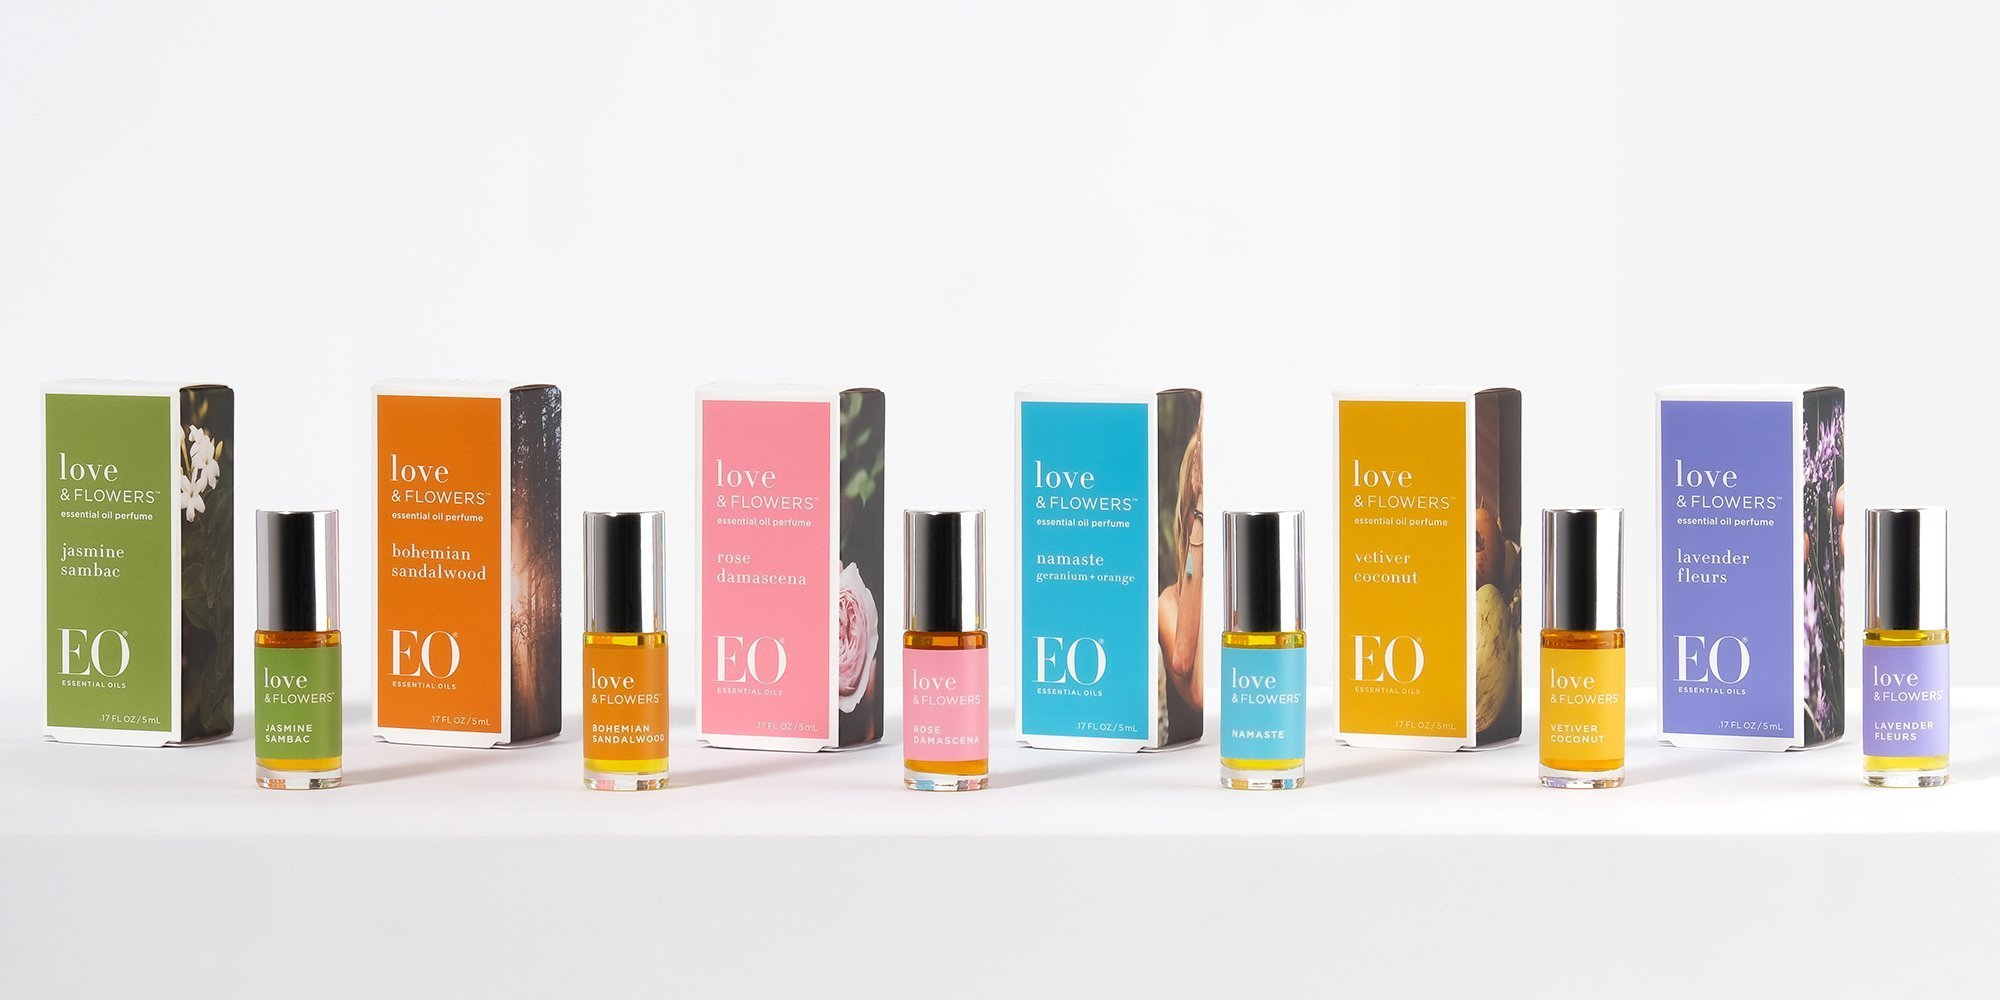 How EO Products Became An Organic Body Care Powerhouse Expected To Reach Nearly $70M In Sales This Year